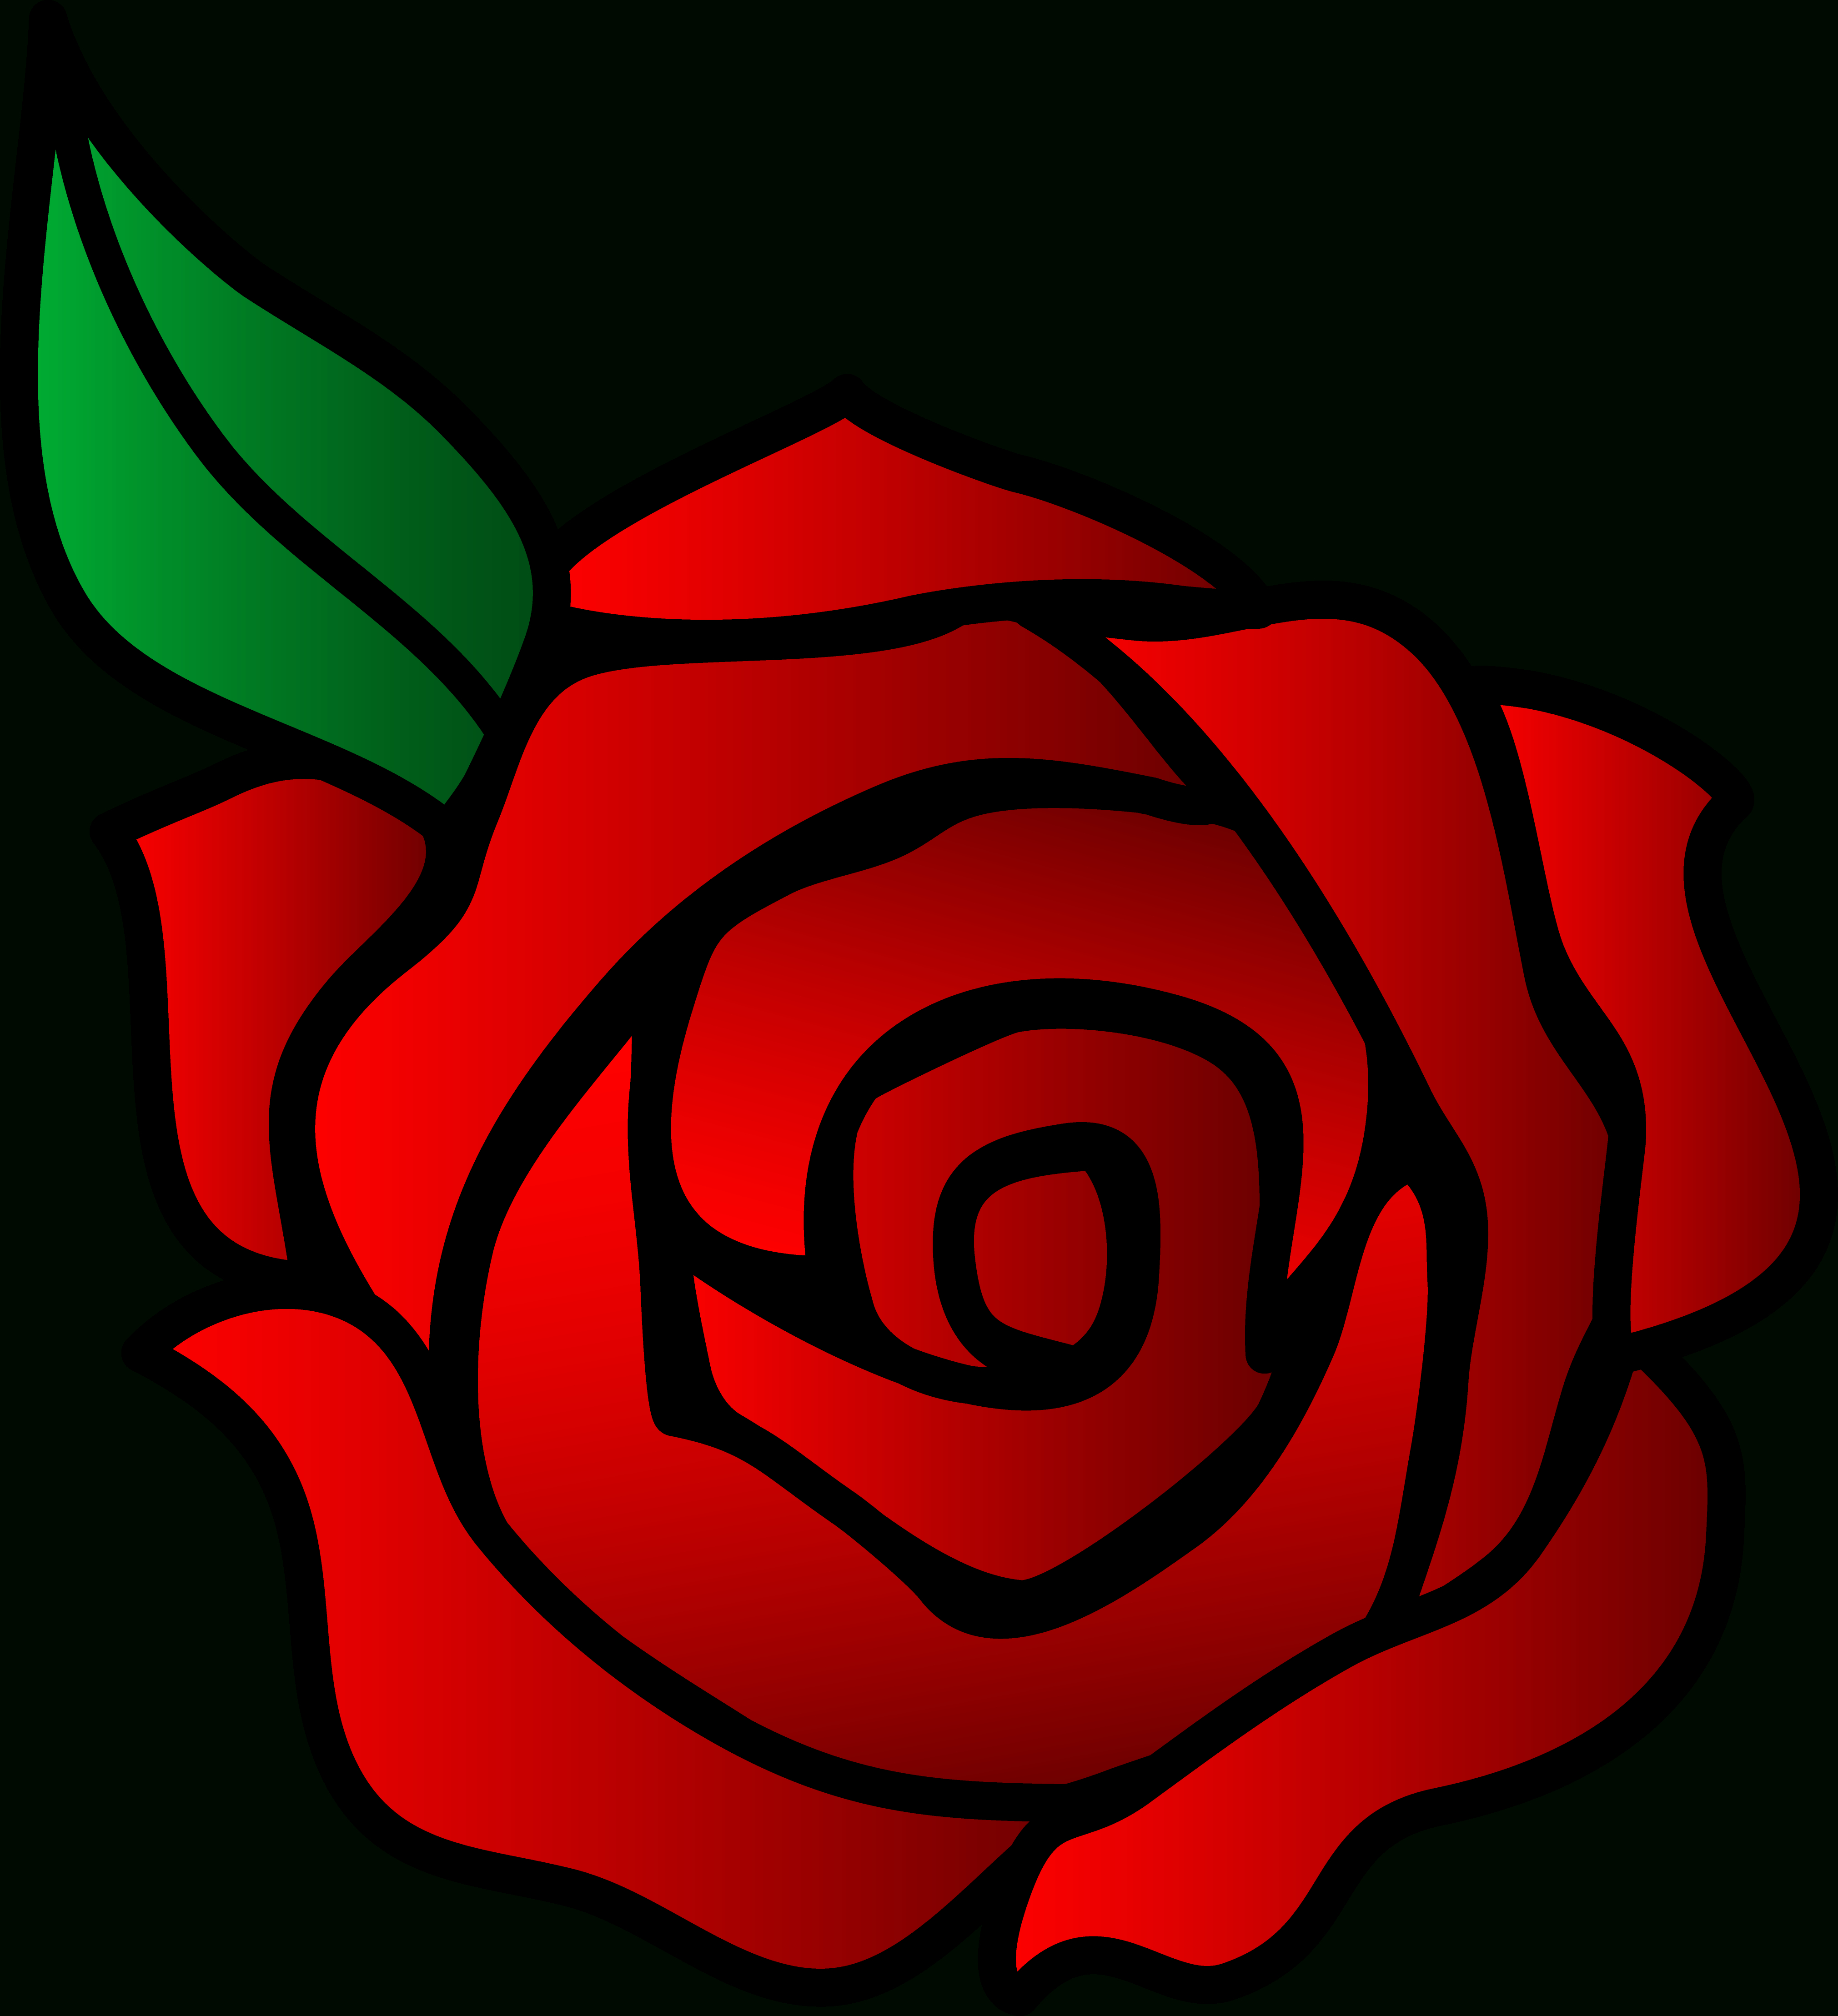 Rose Drawing Clip Art at GetDrawings.com | Free for personal use ...